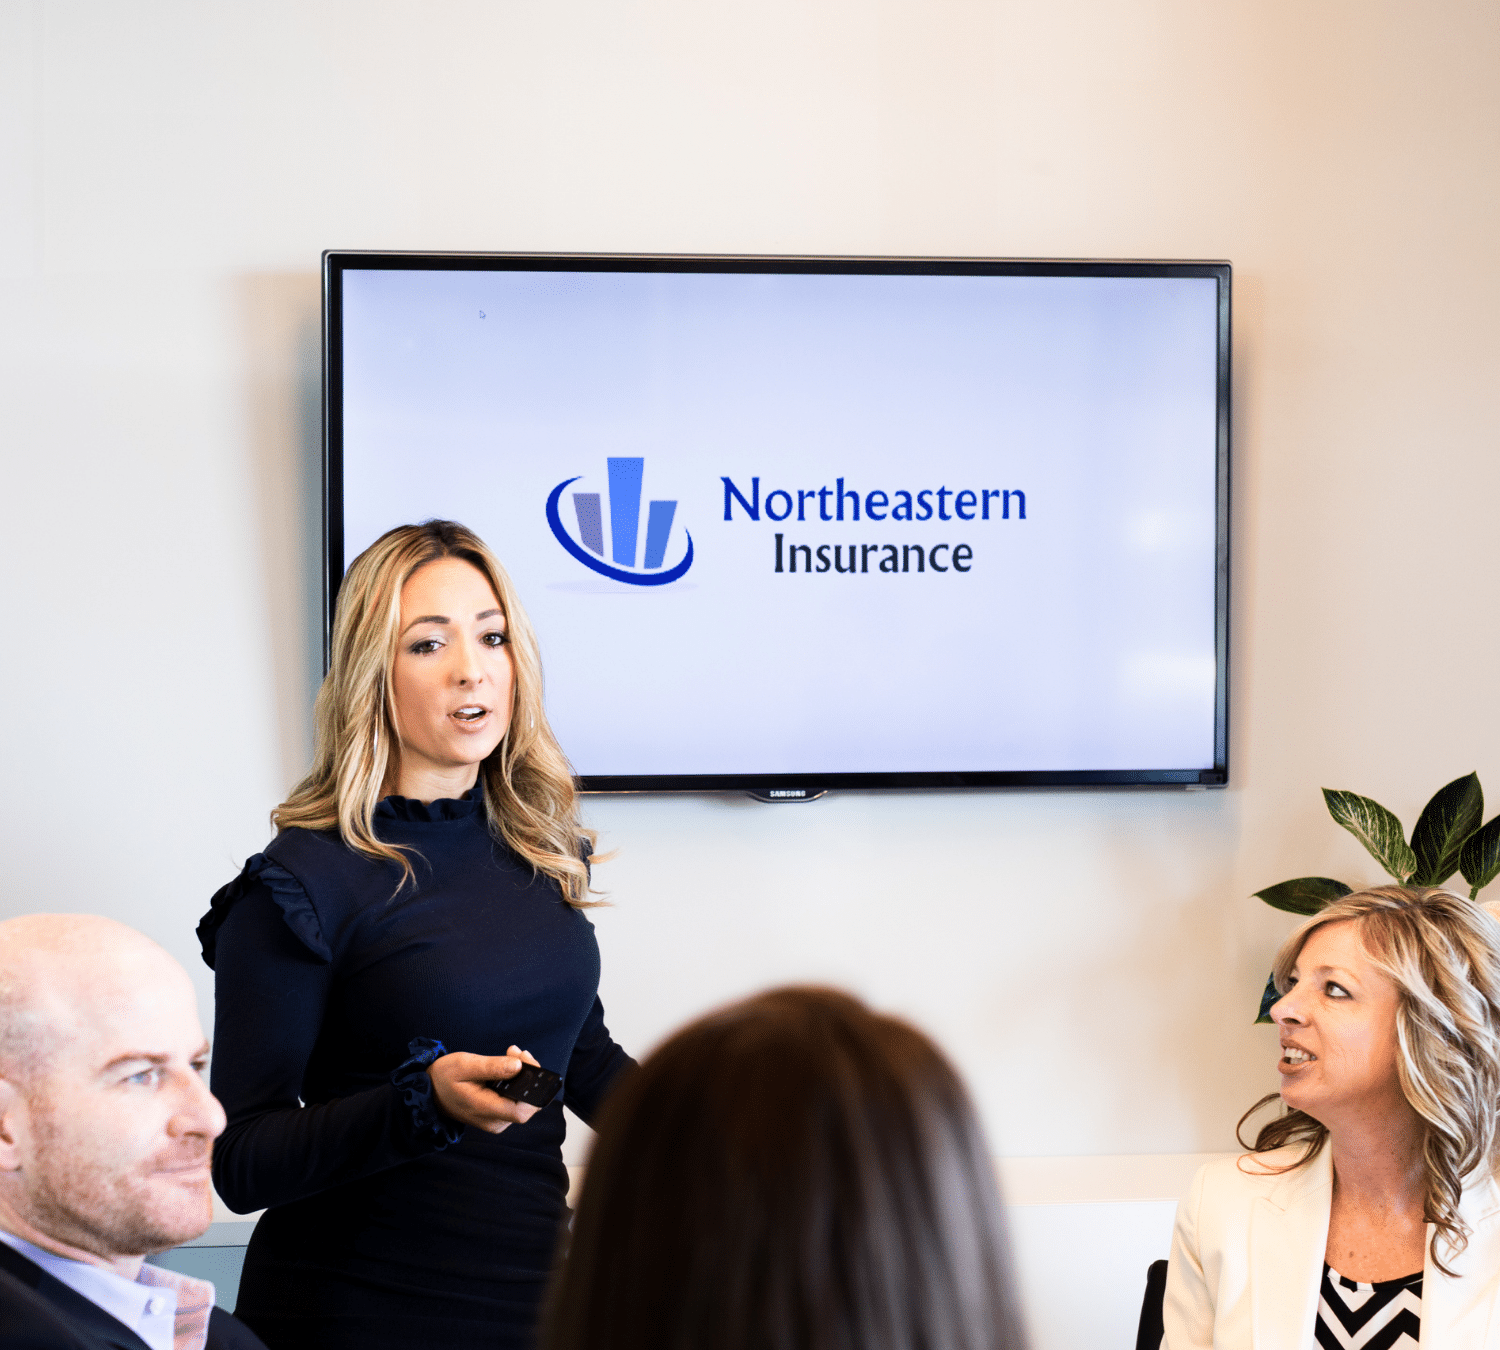 Women presenting at northeastern insurance